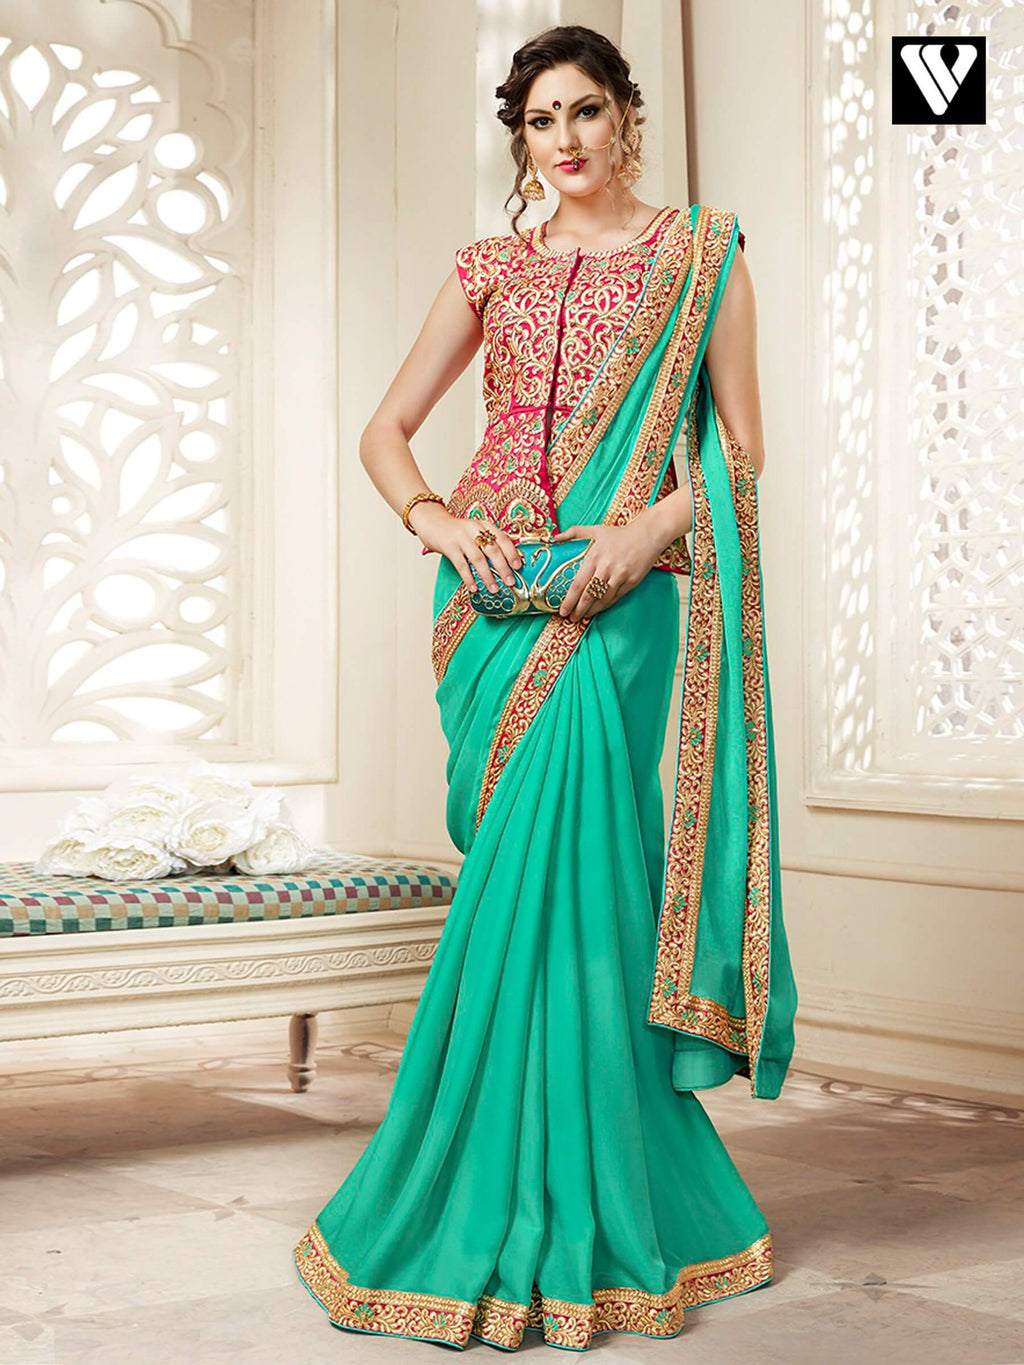 Georgette Function Wear Plain Saree with Lace Border and Heavy Long Blouse